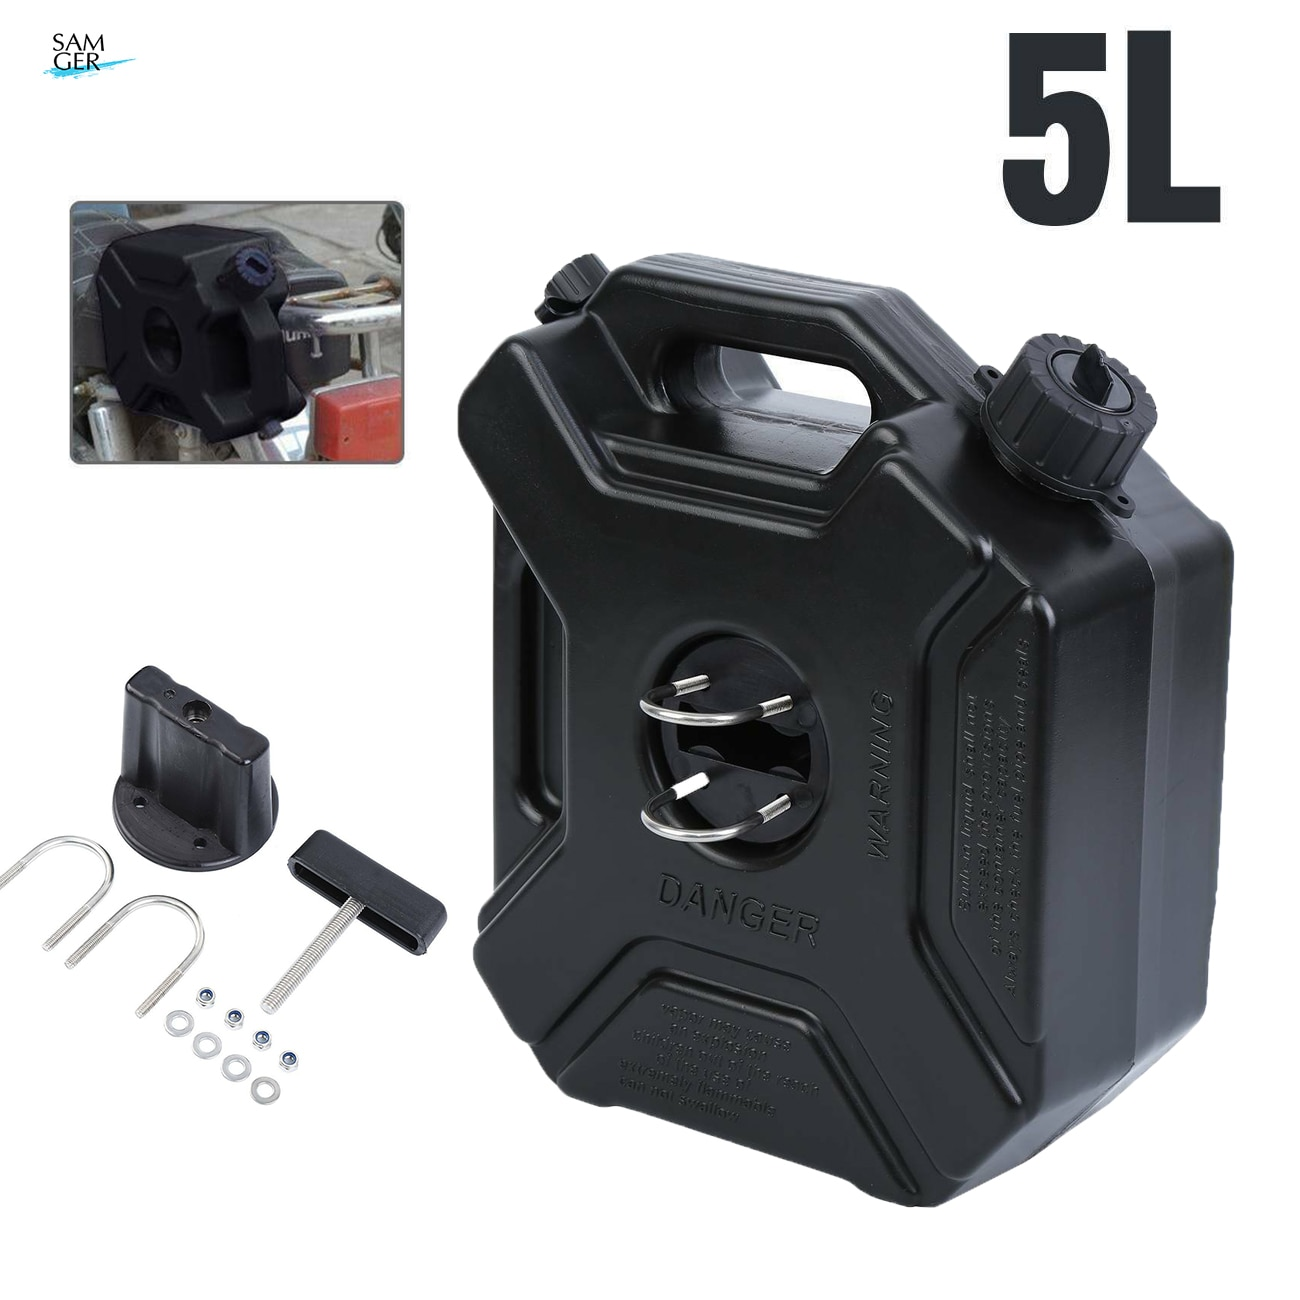 5l plastic jerry cans gas fuel tank suv motorcycle mounting kit Samger 5L Black Fuel Tank Can Car Motorcycle Spare Petrol Oil Tank Spare Container Anti-static Jerry Can Fuel Tank Pack Jerrycan